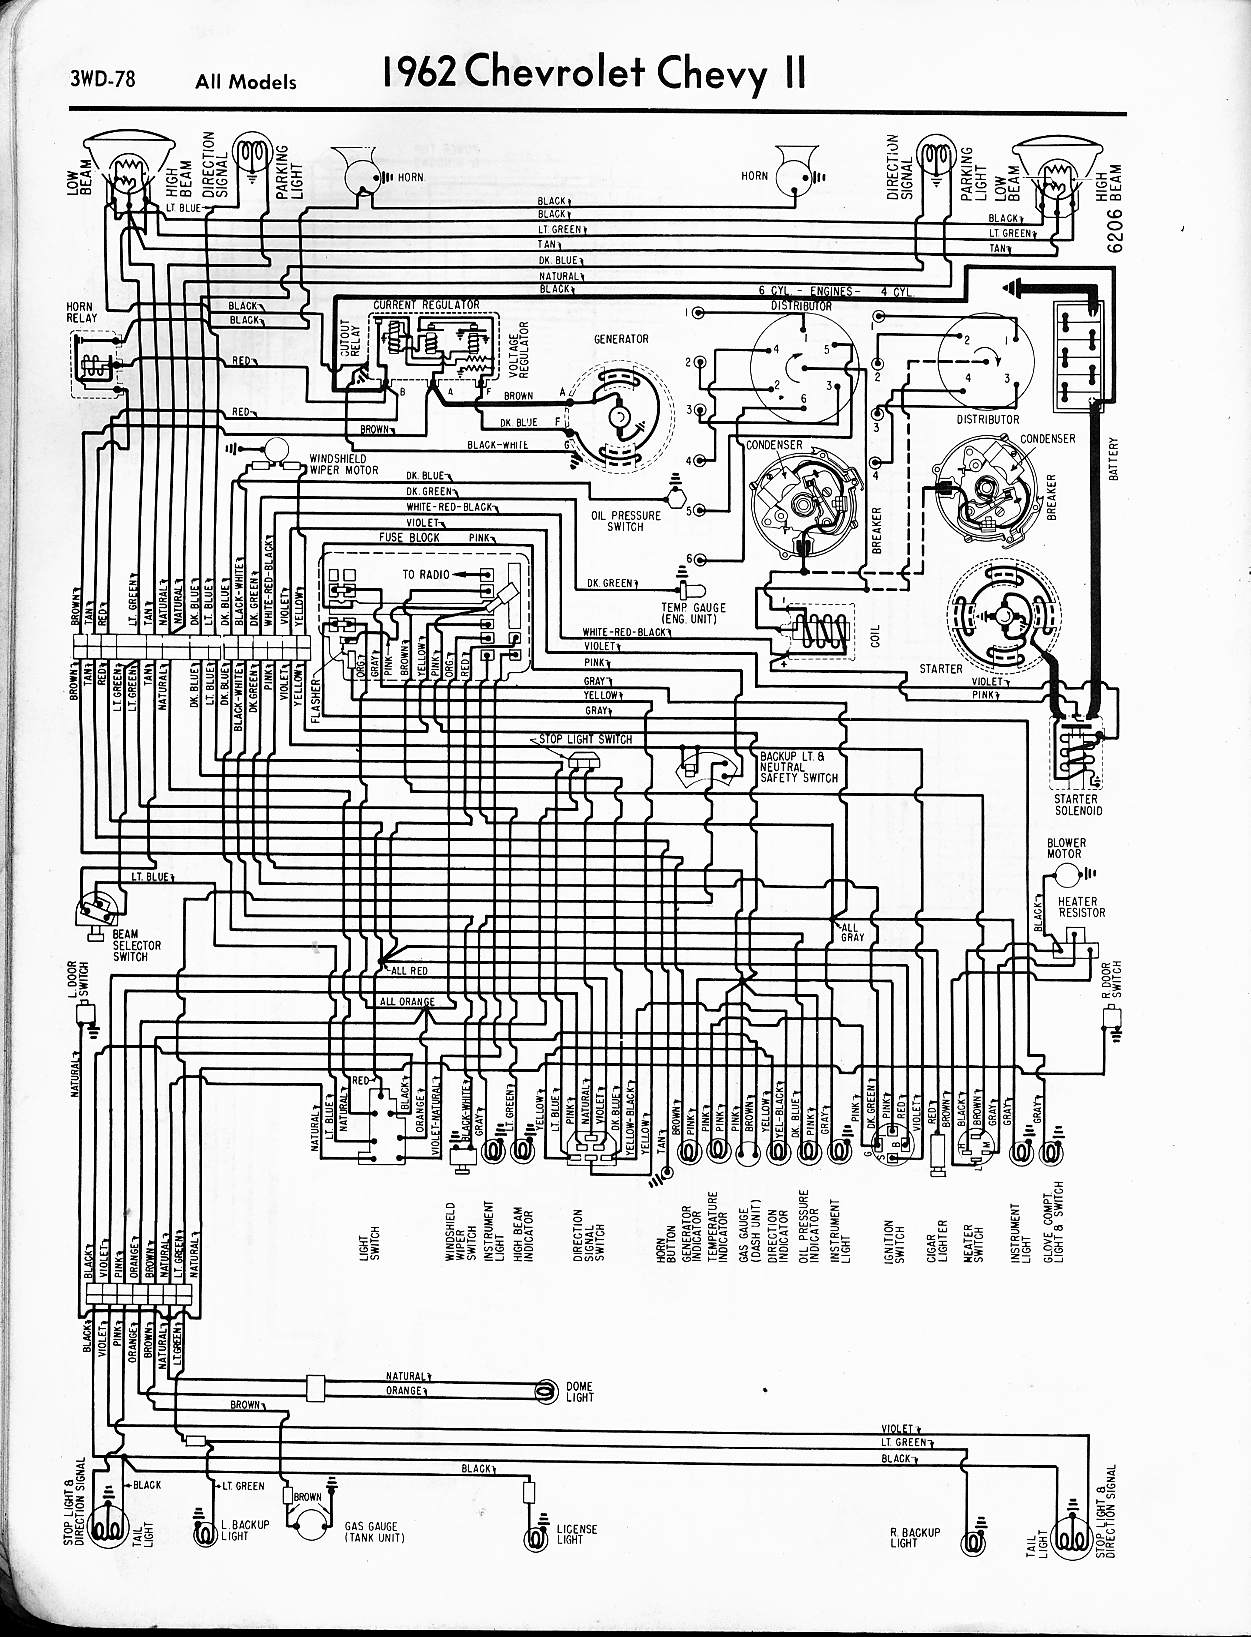 hight resolution of 62 chevy headlight wiring electrical schematic wiring diagram 62 chevy headlight wiring